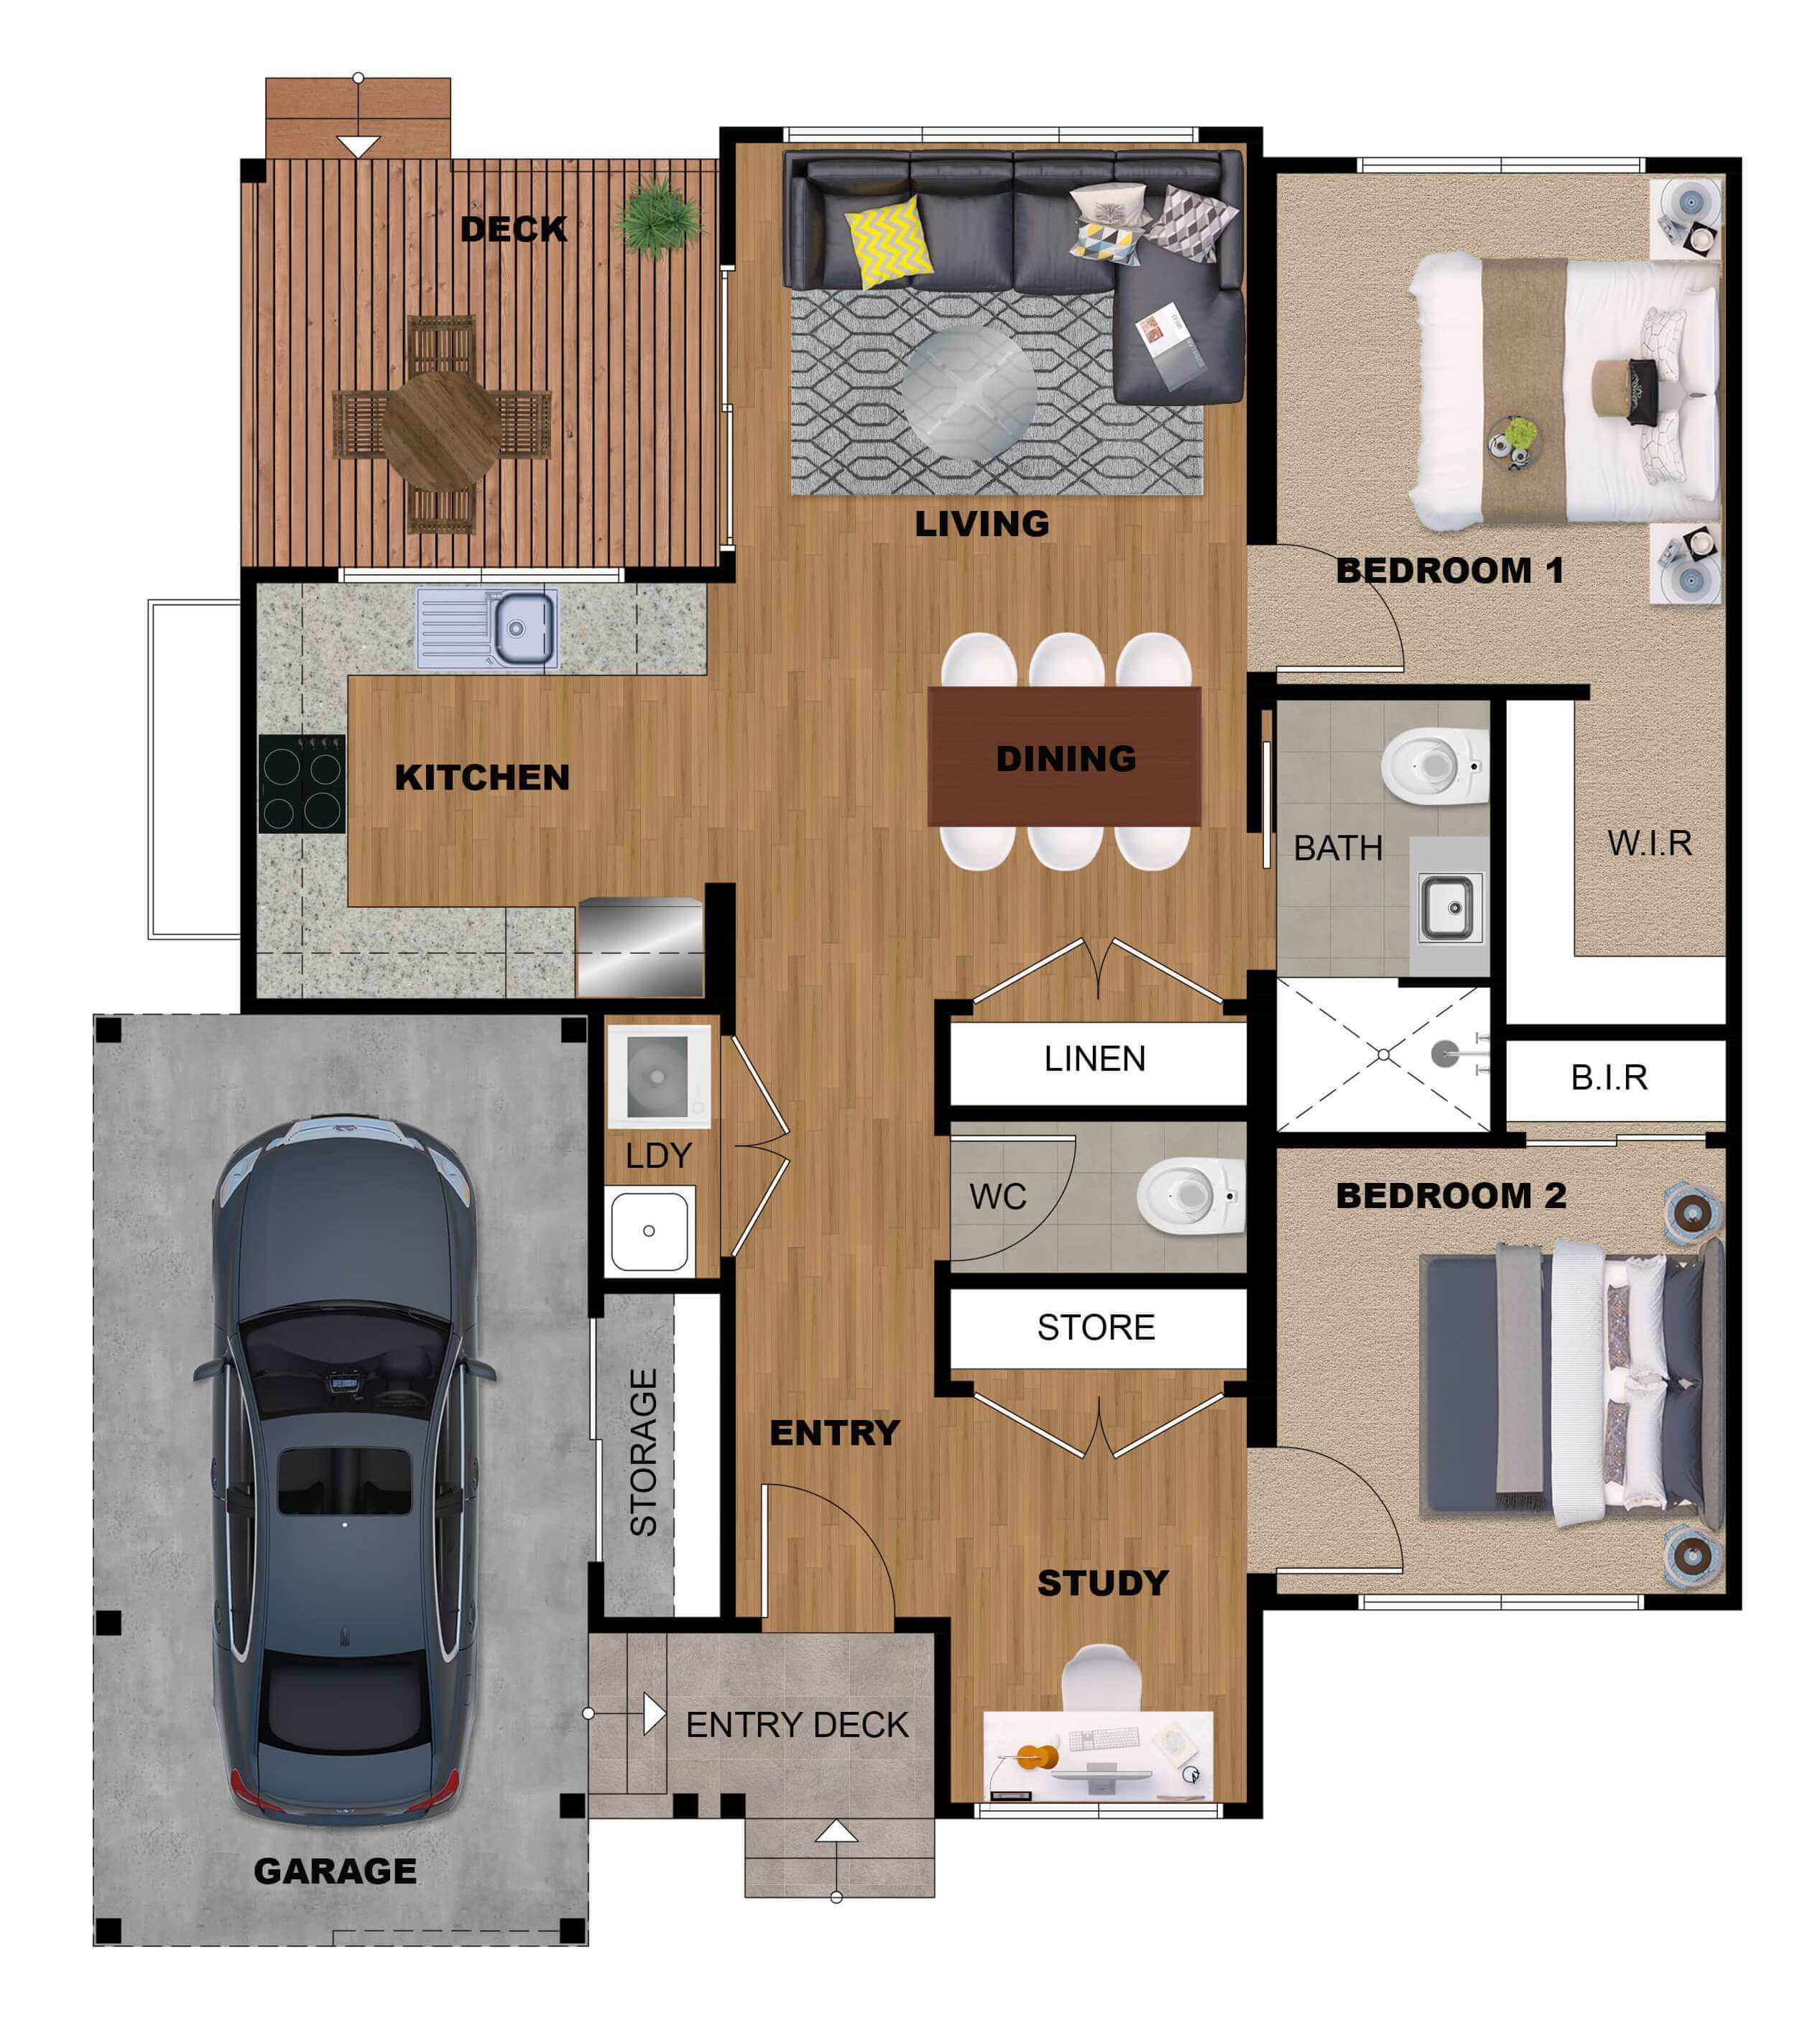 2d 3d Floor Plan Rendering Services At Best Price The 2d3d Floor